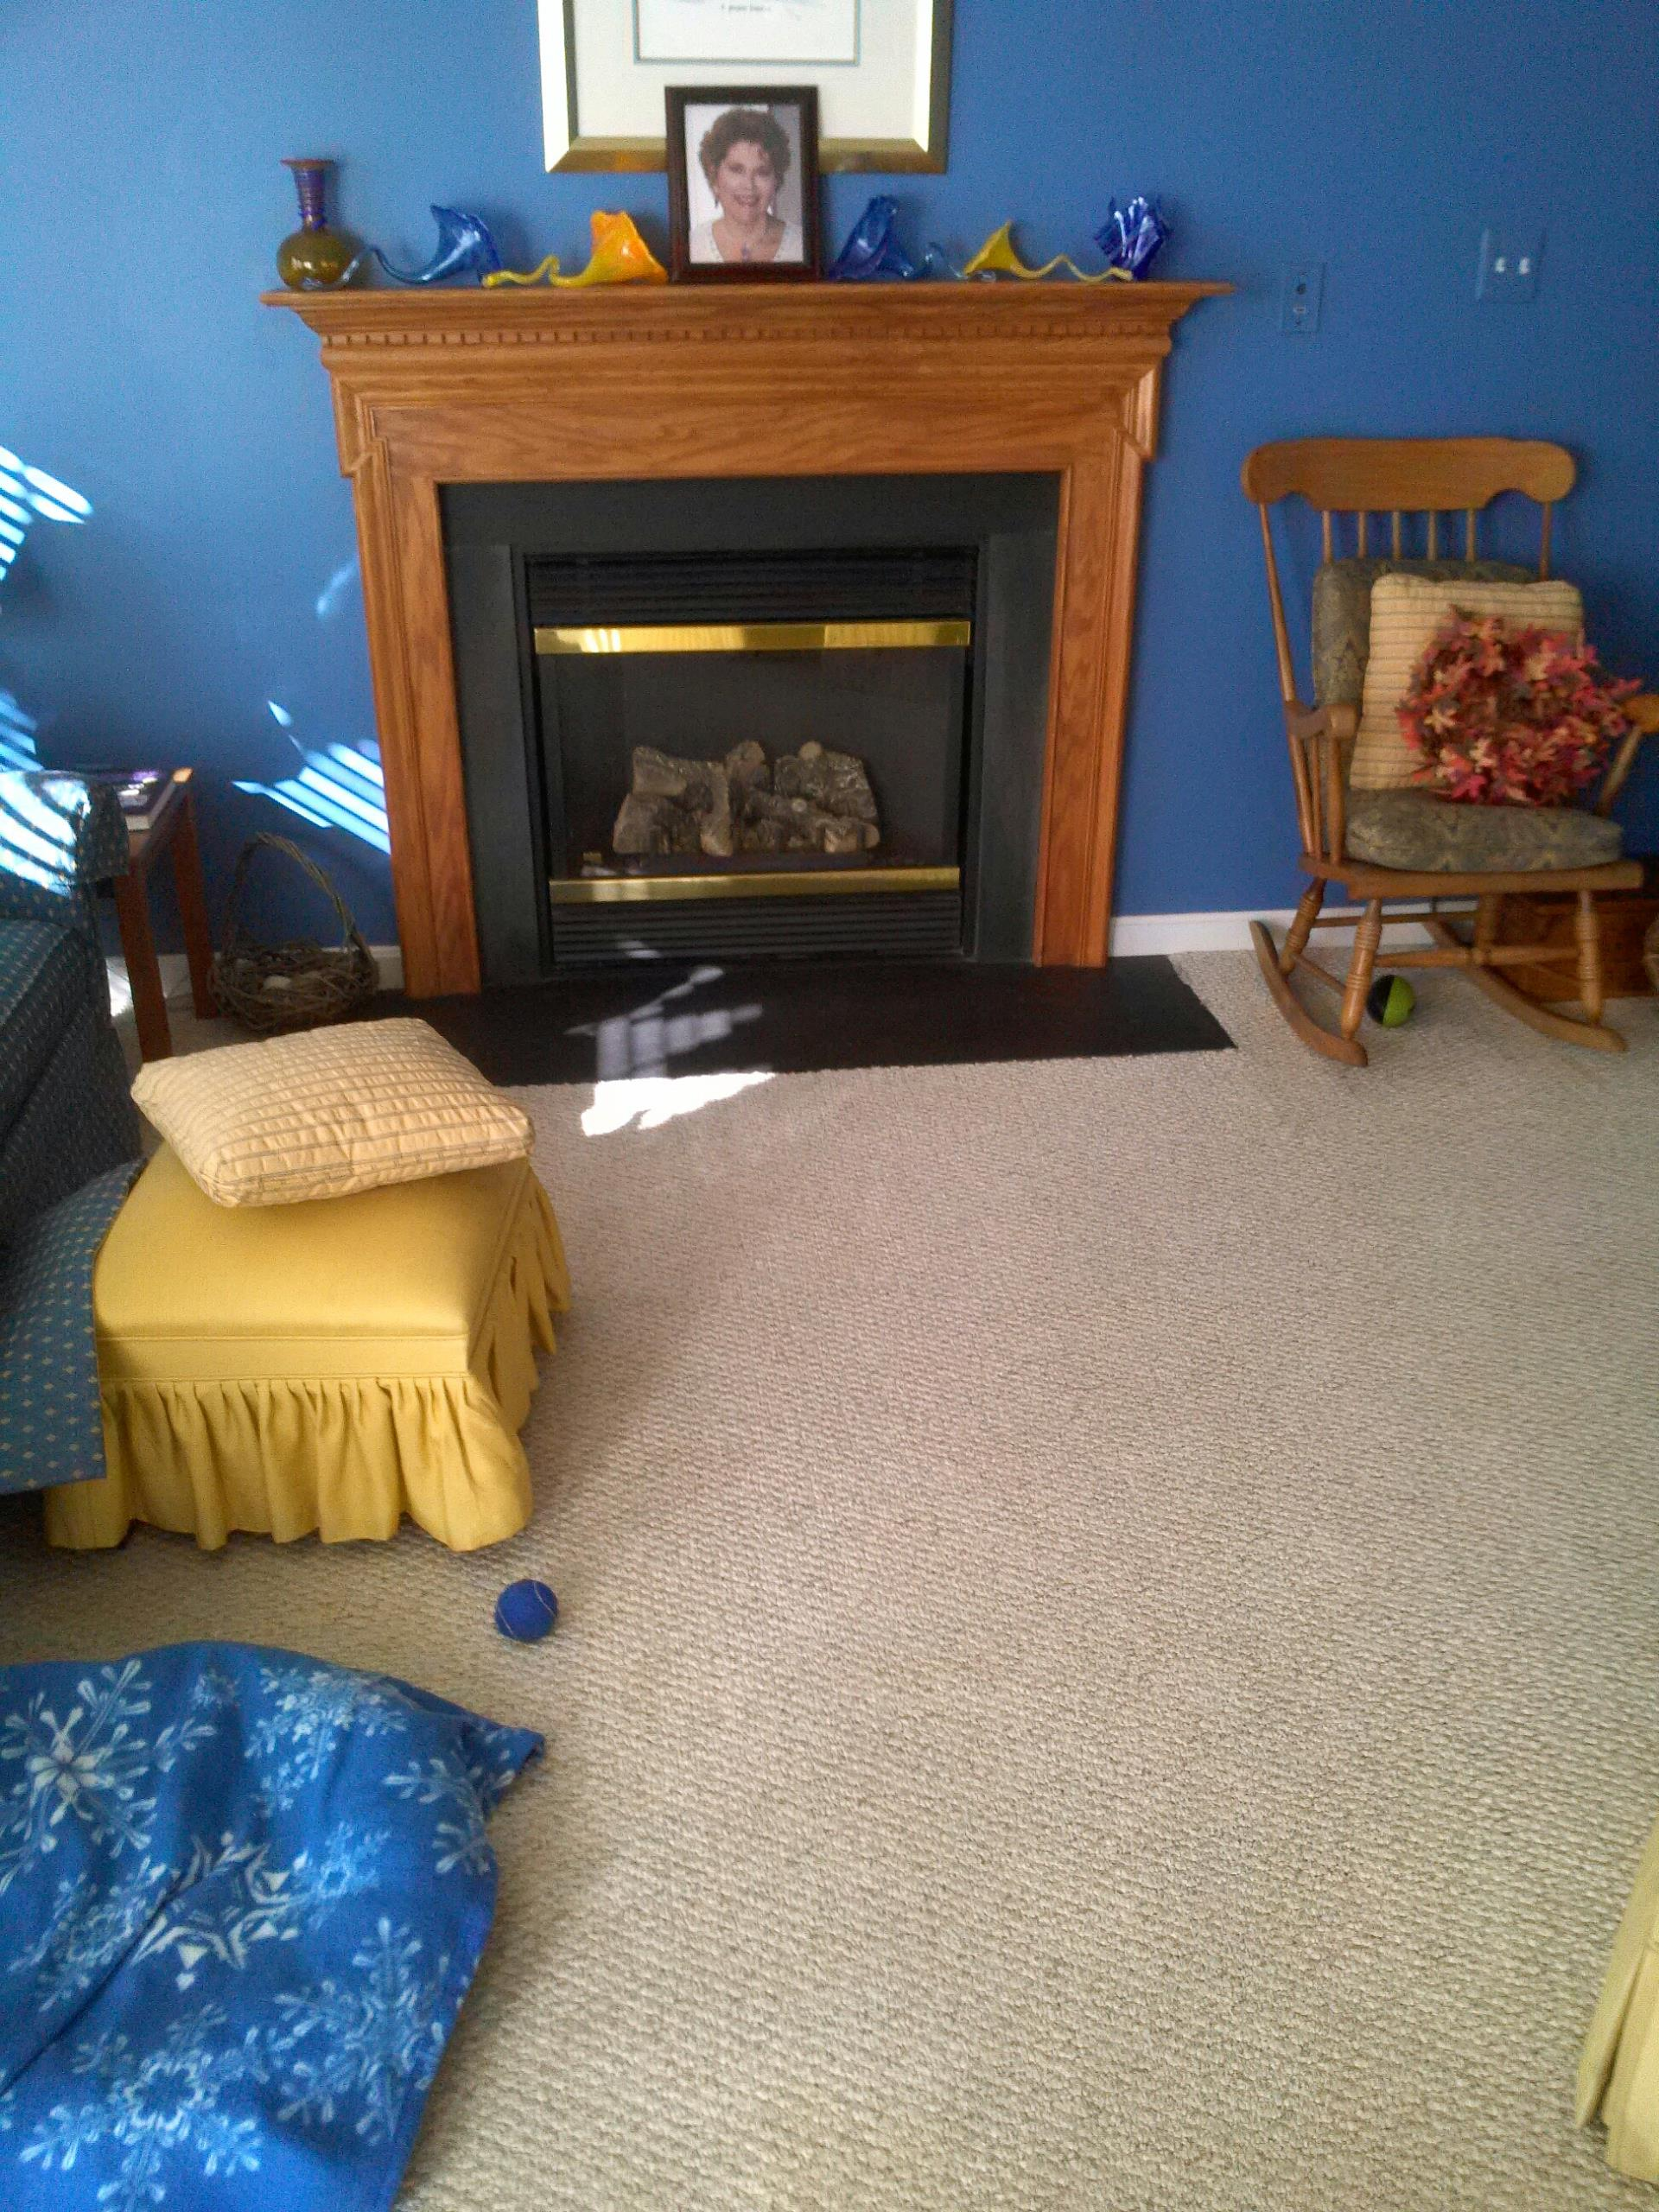 Gambrills, MD - Gambrills Maryland gas fire place insert & gas log set installation repair service call.